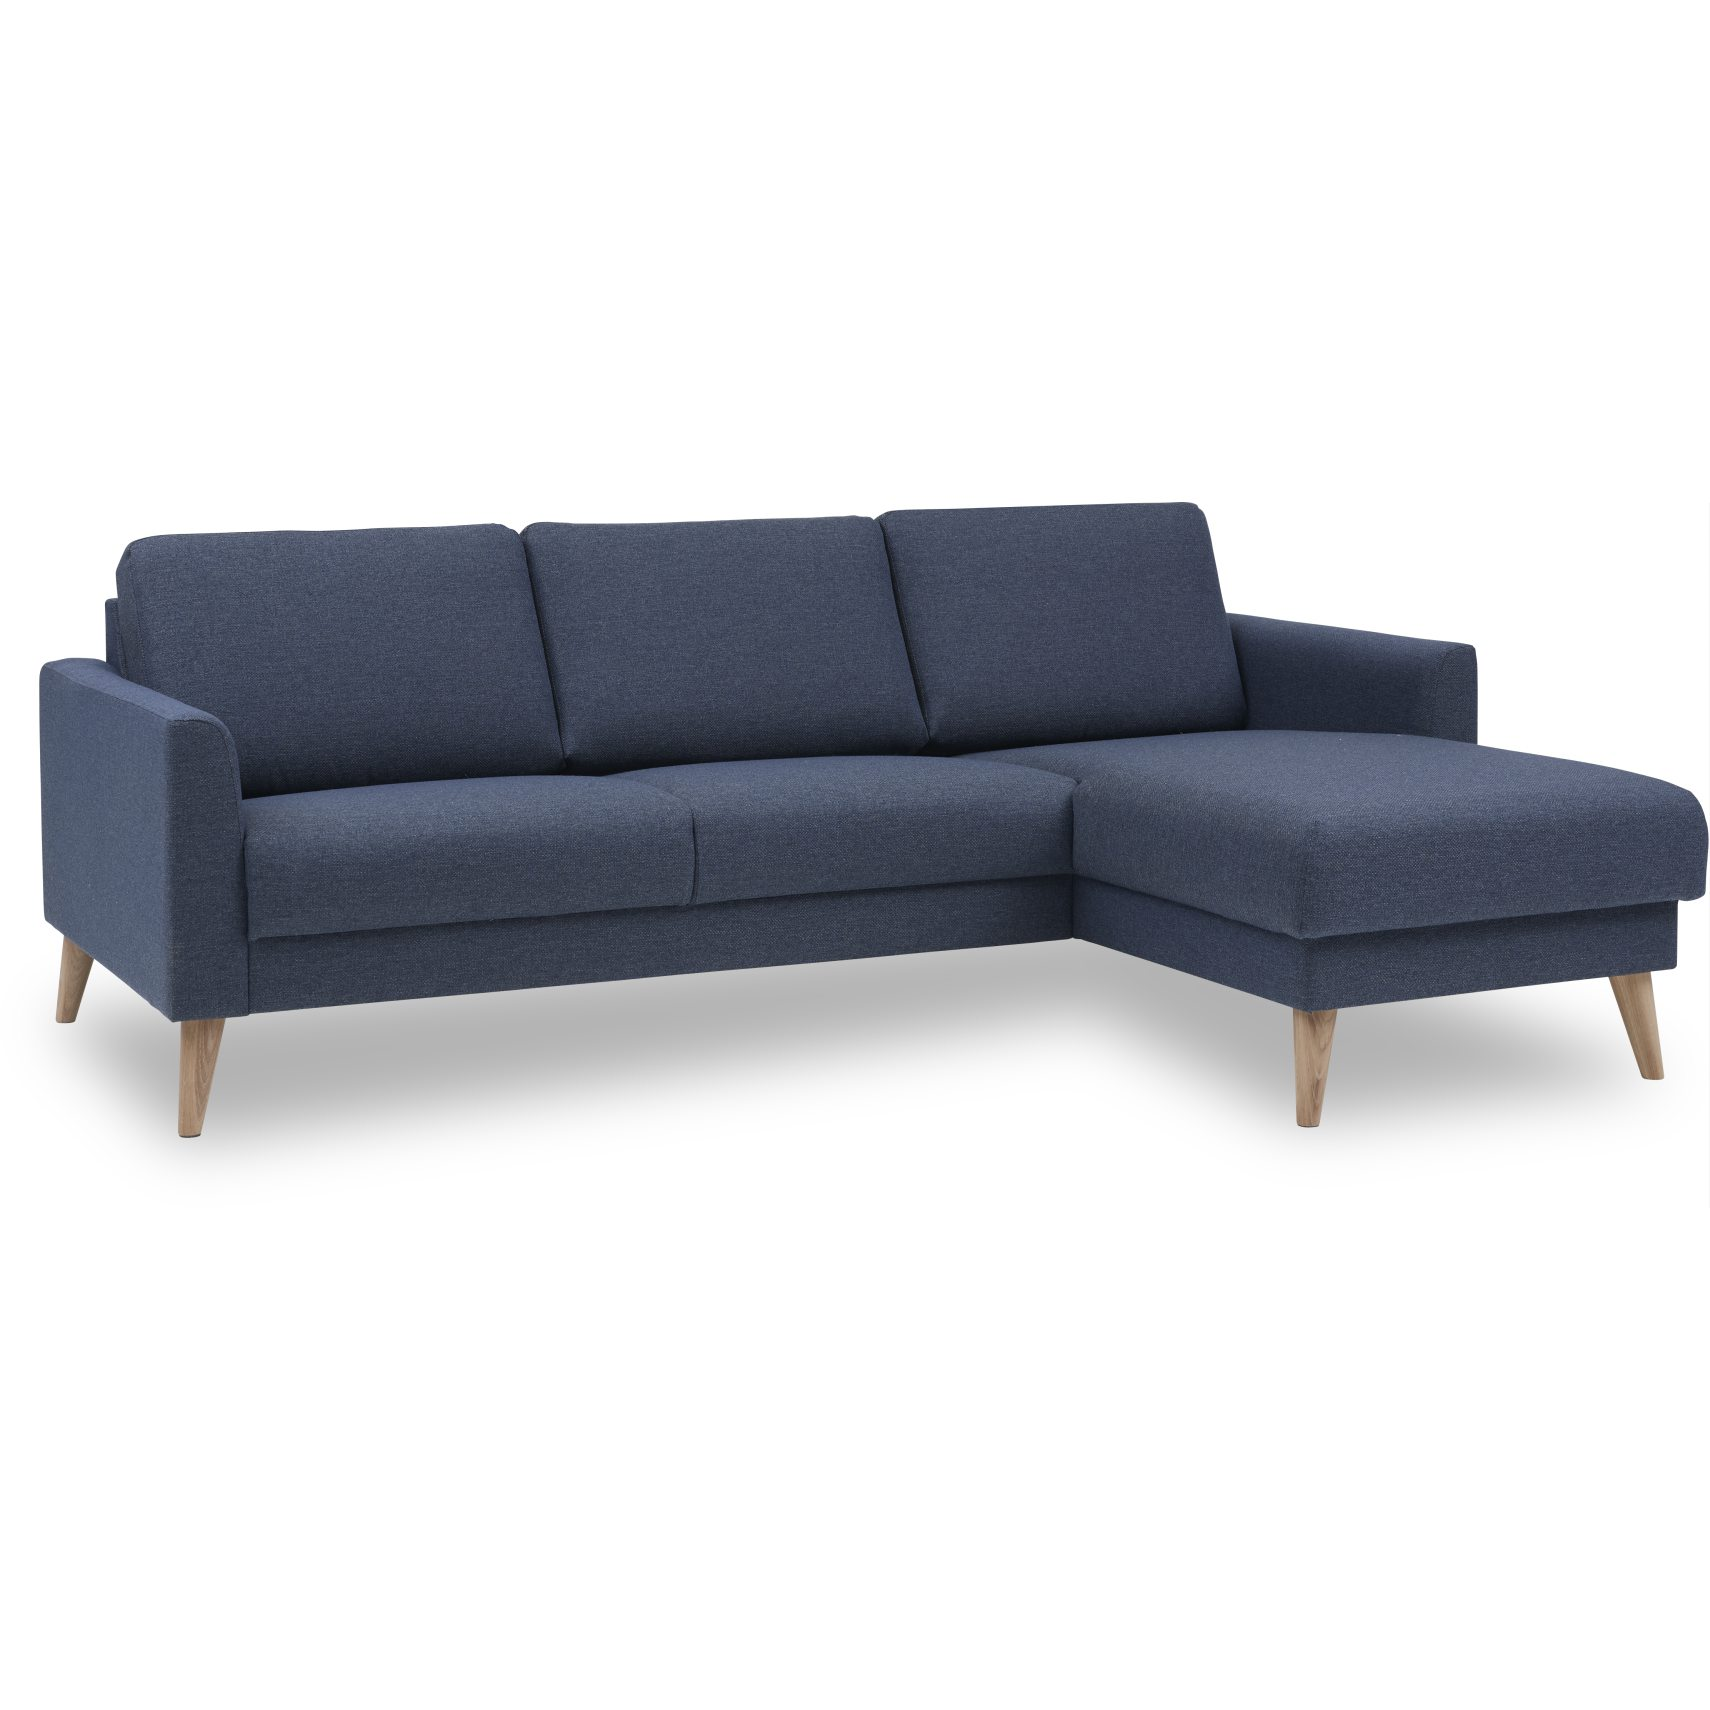 Lotus Sofa med chaiselong